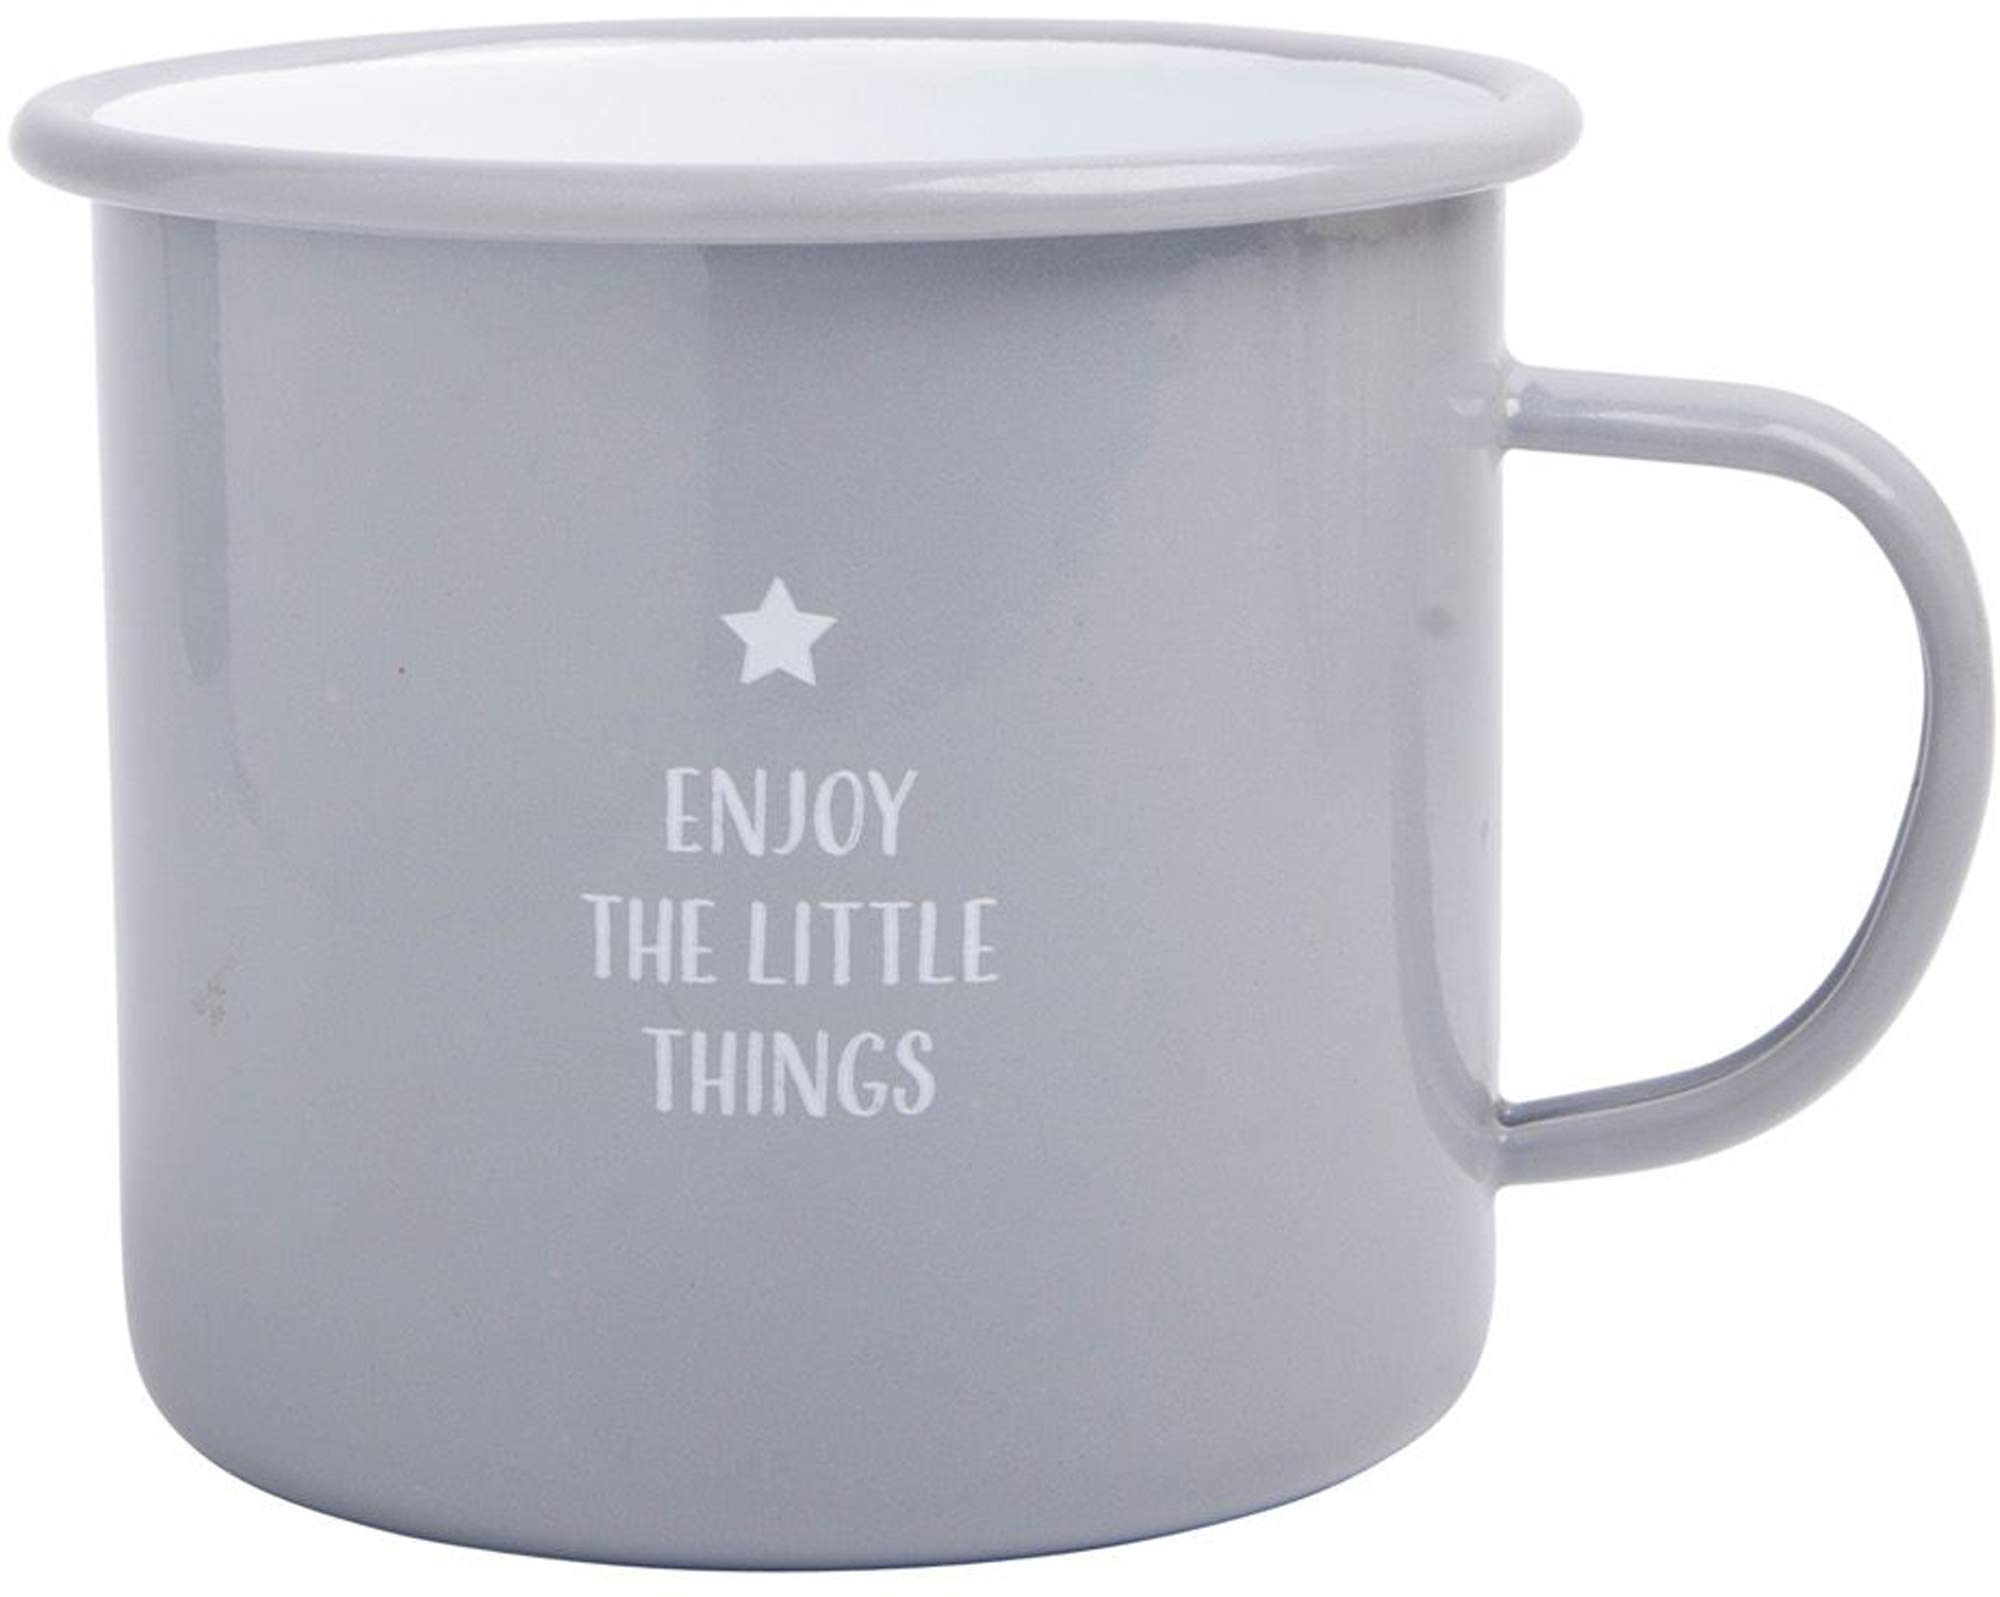 Large Light Weight Camping Coffee Mug - Tin Cup Enamel Coated - Holds 24 Oz (Grey - Enjoy The Little Things)